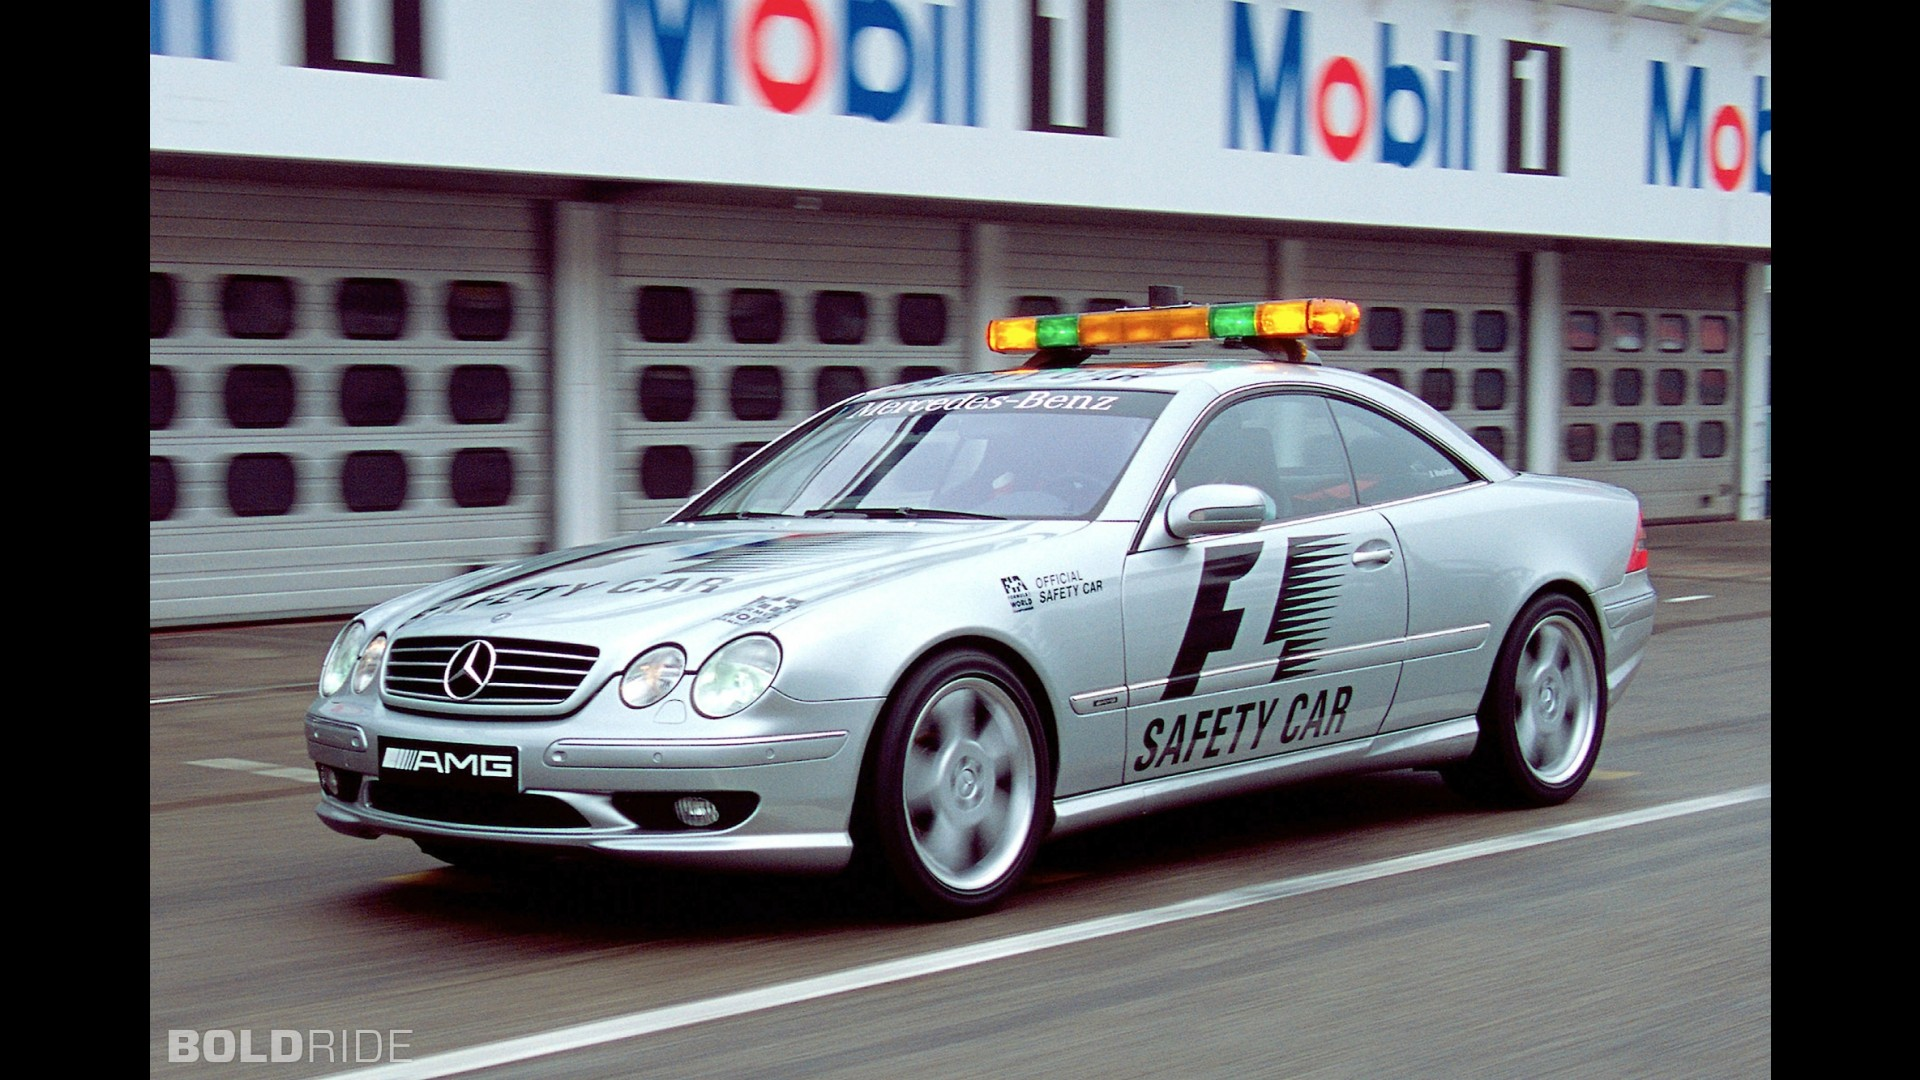 Mercedes benz cl55 amg f1 safety car for Mercedes benz f1 car